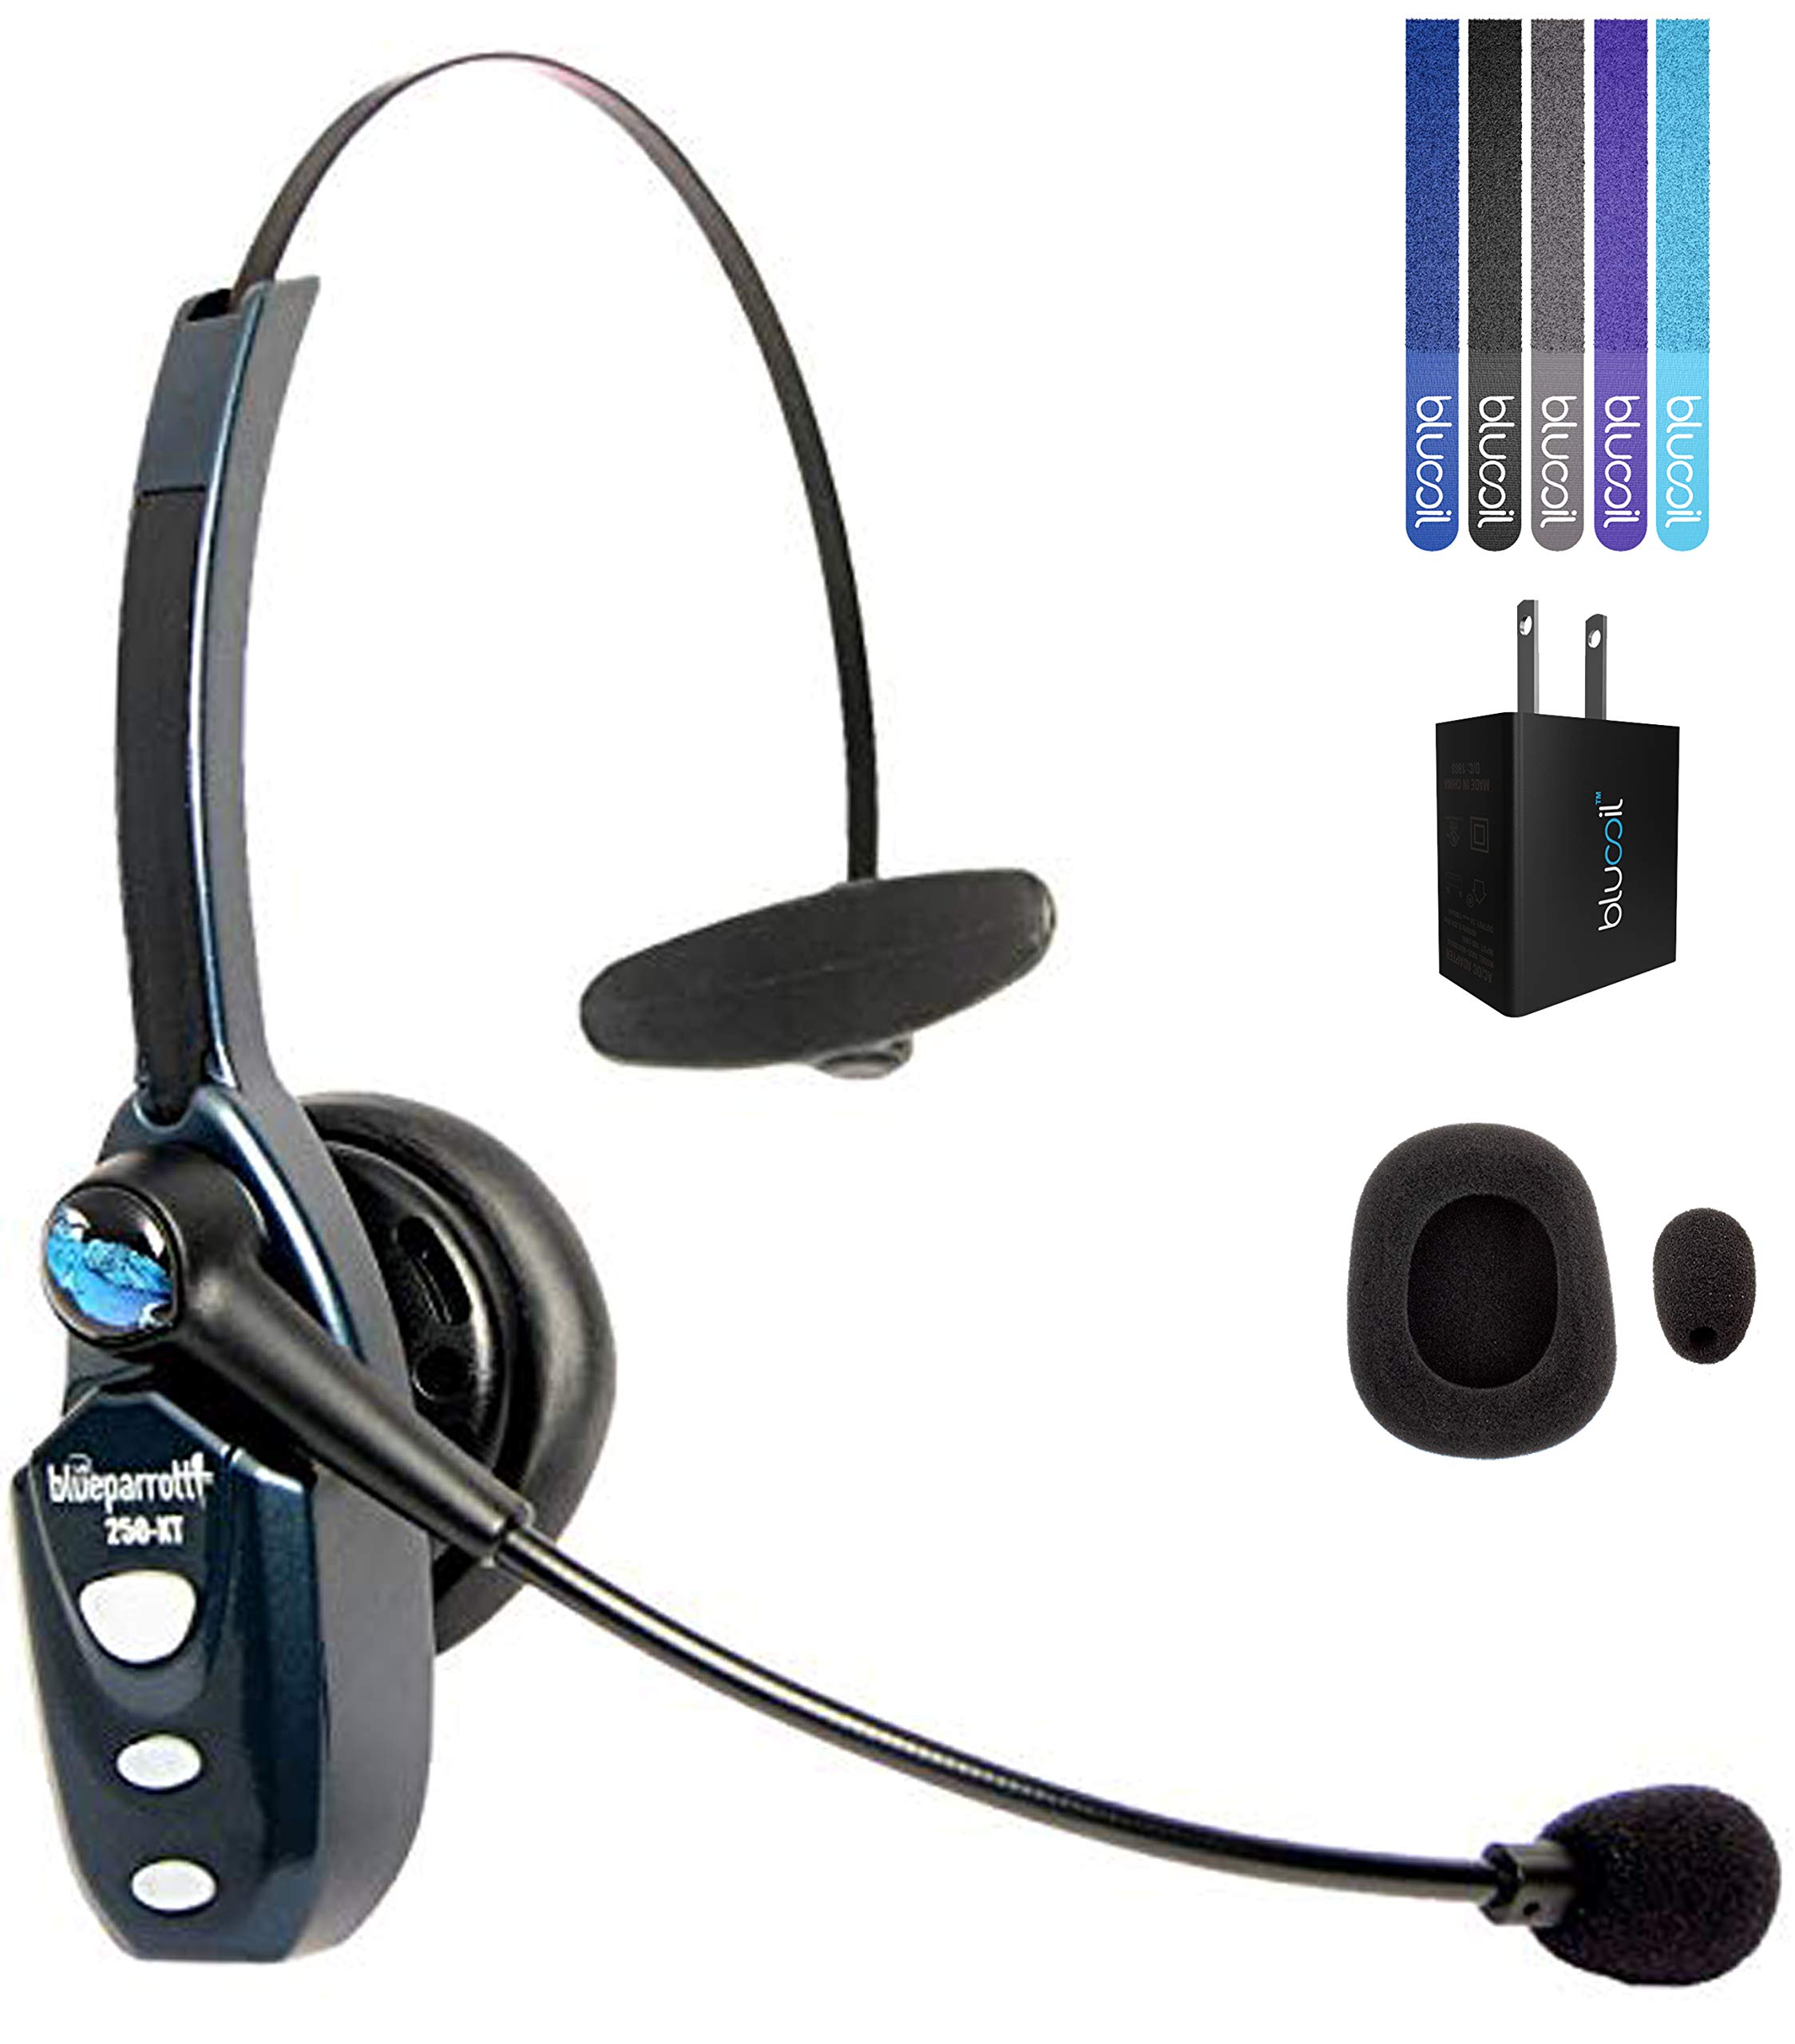 VXi BlueParrott B250-XT Bluetooth Headset with 85% Noise Cancellation Bundle with Blucoil USB Wall Adapter, and 5-Pack of Reusable Cable Ties by Blucoil